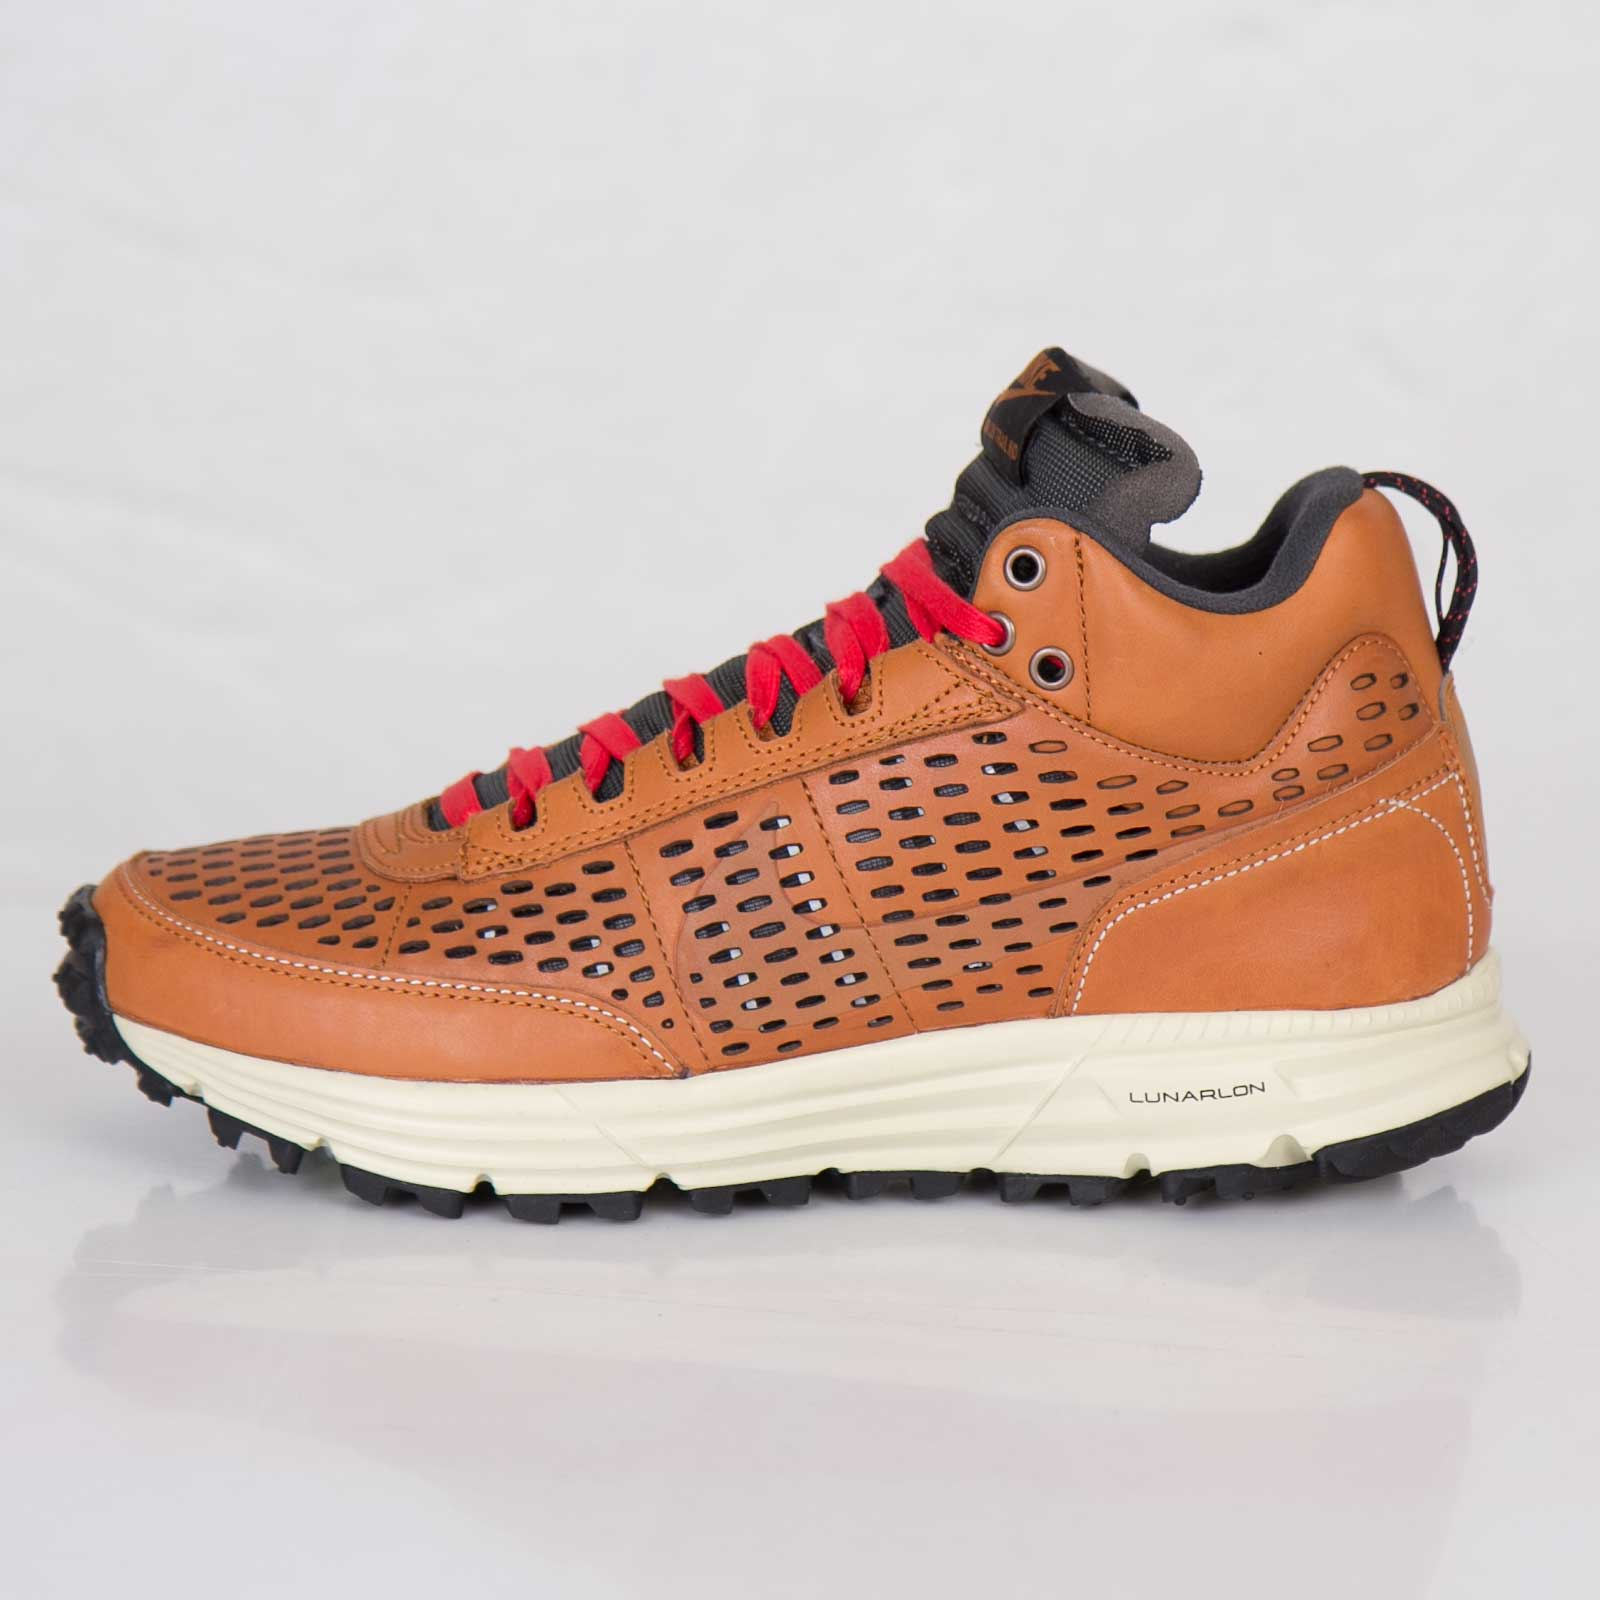 low cost ead93 707c4 Nike Lunar LDV Sneakerboot Premium QS - 8. Close